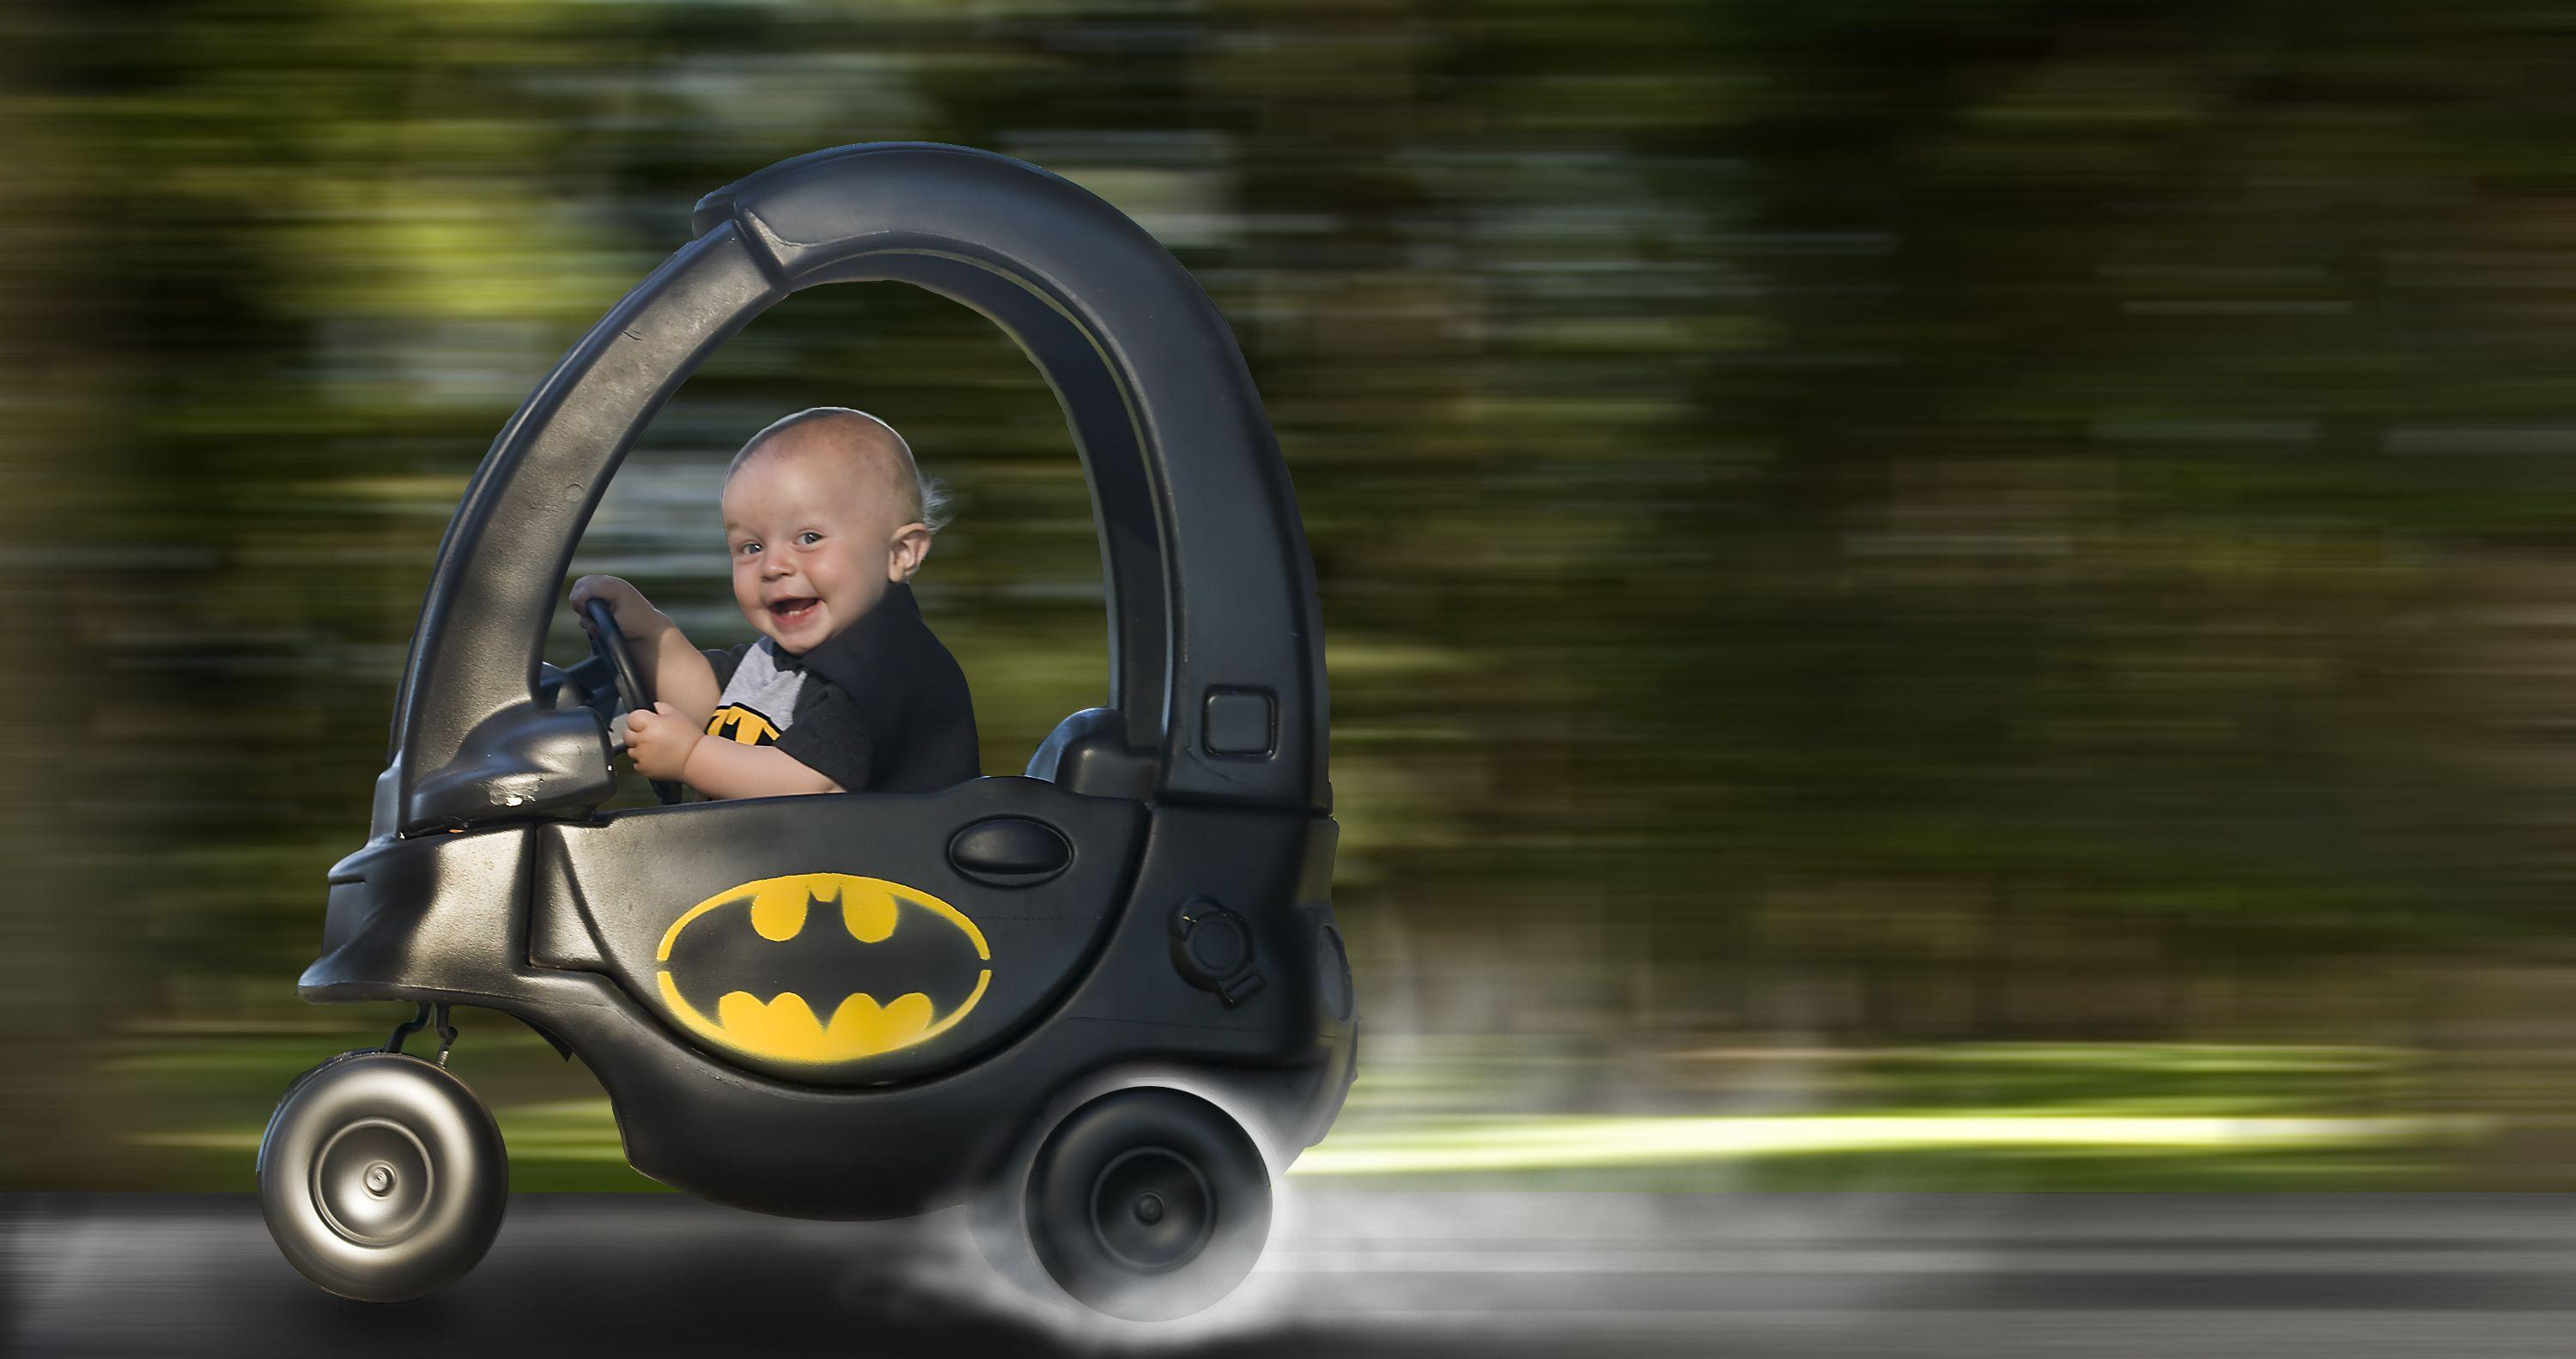 A friend wanted a simple Batman themed photo shoot for his 1 year old, I decided to kick it up a notch. -   Misc